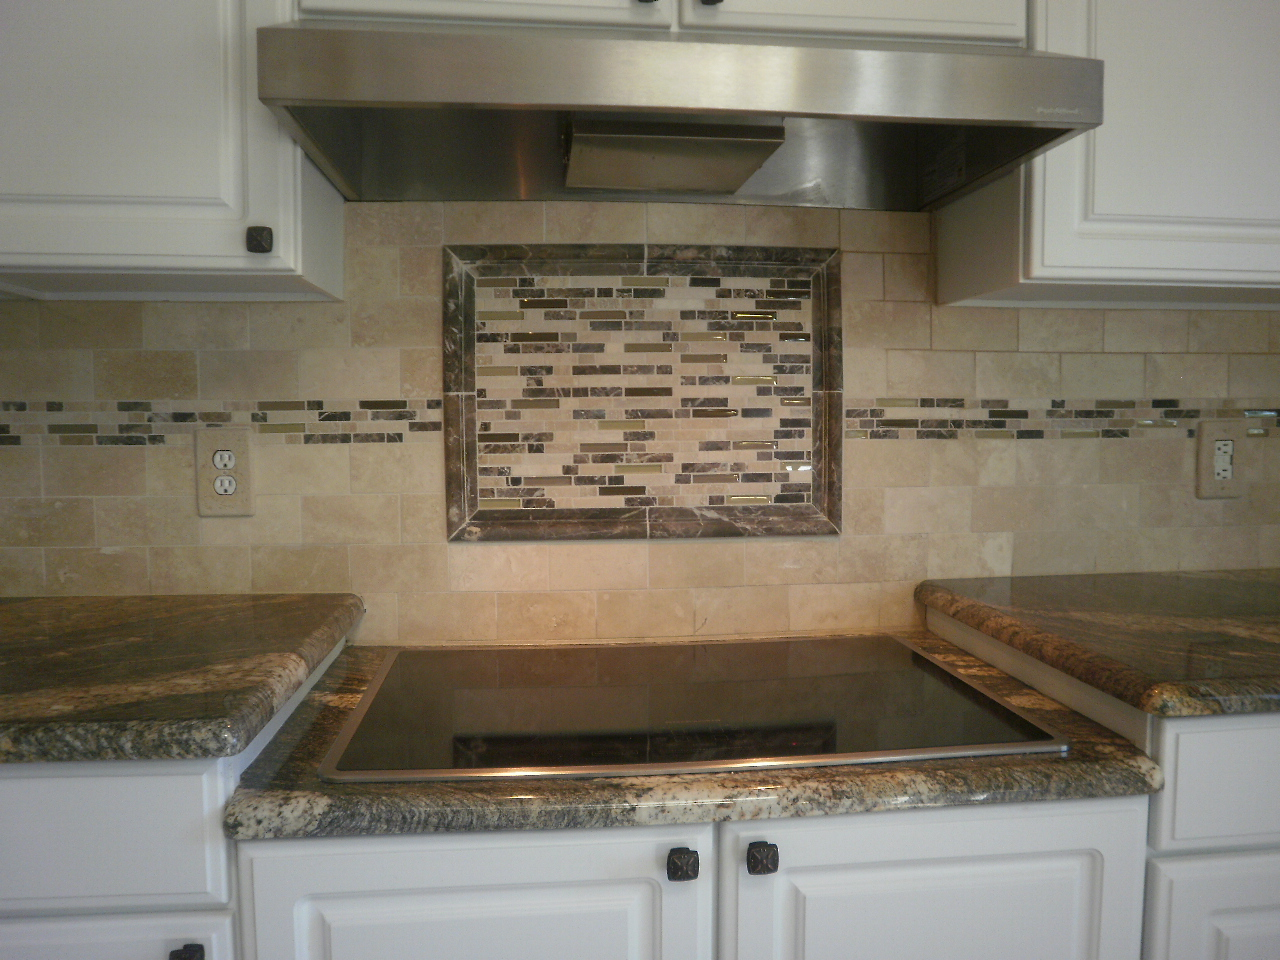 Kitchen backsplash ideas glass tile afreakatheart Kitchen tile design ideas backsplash